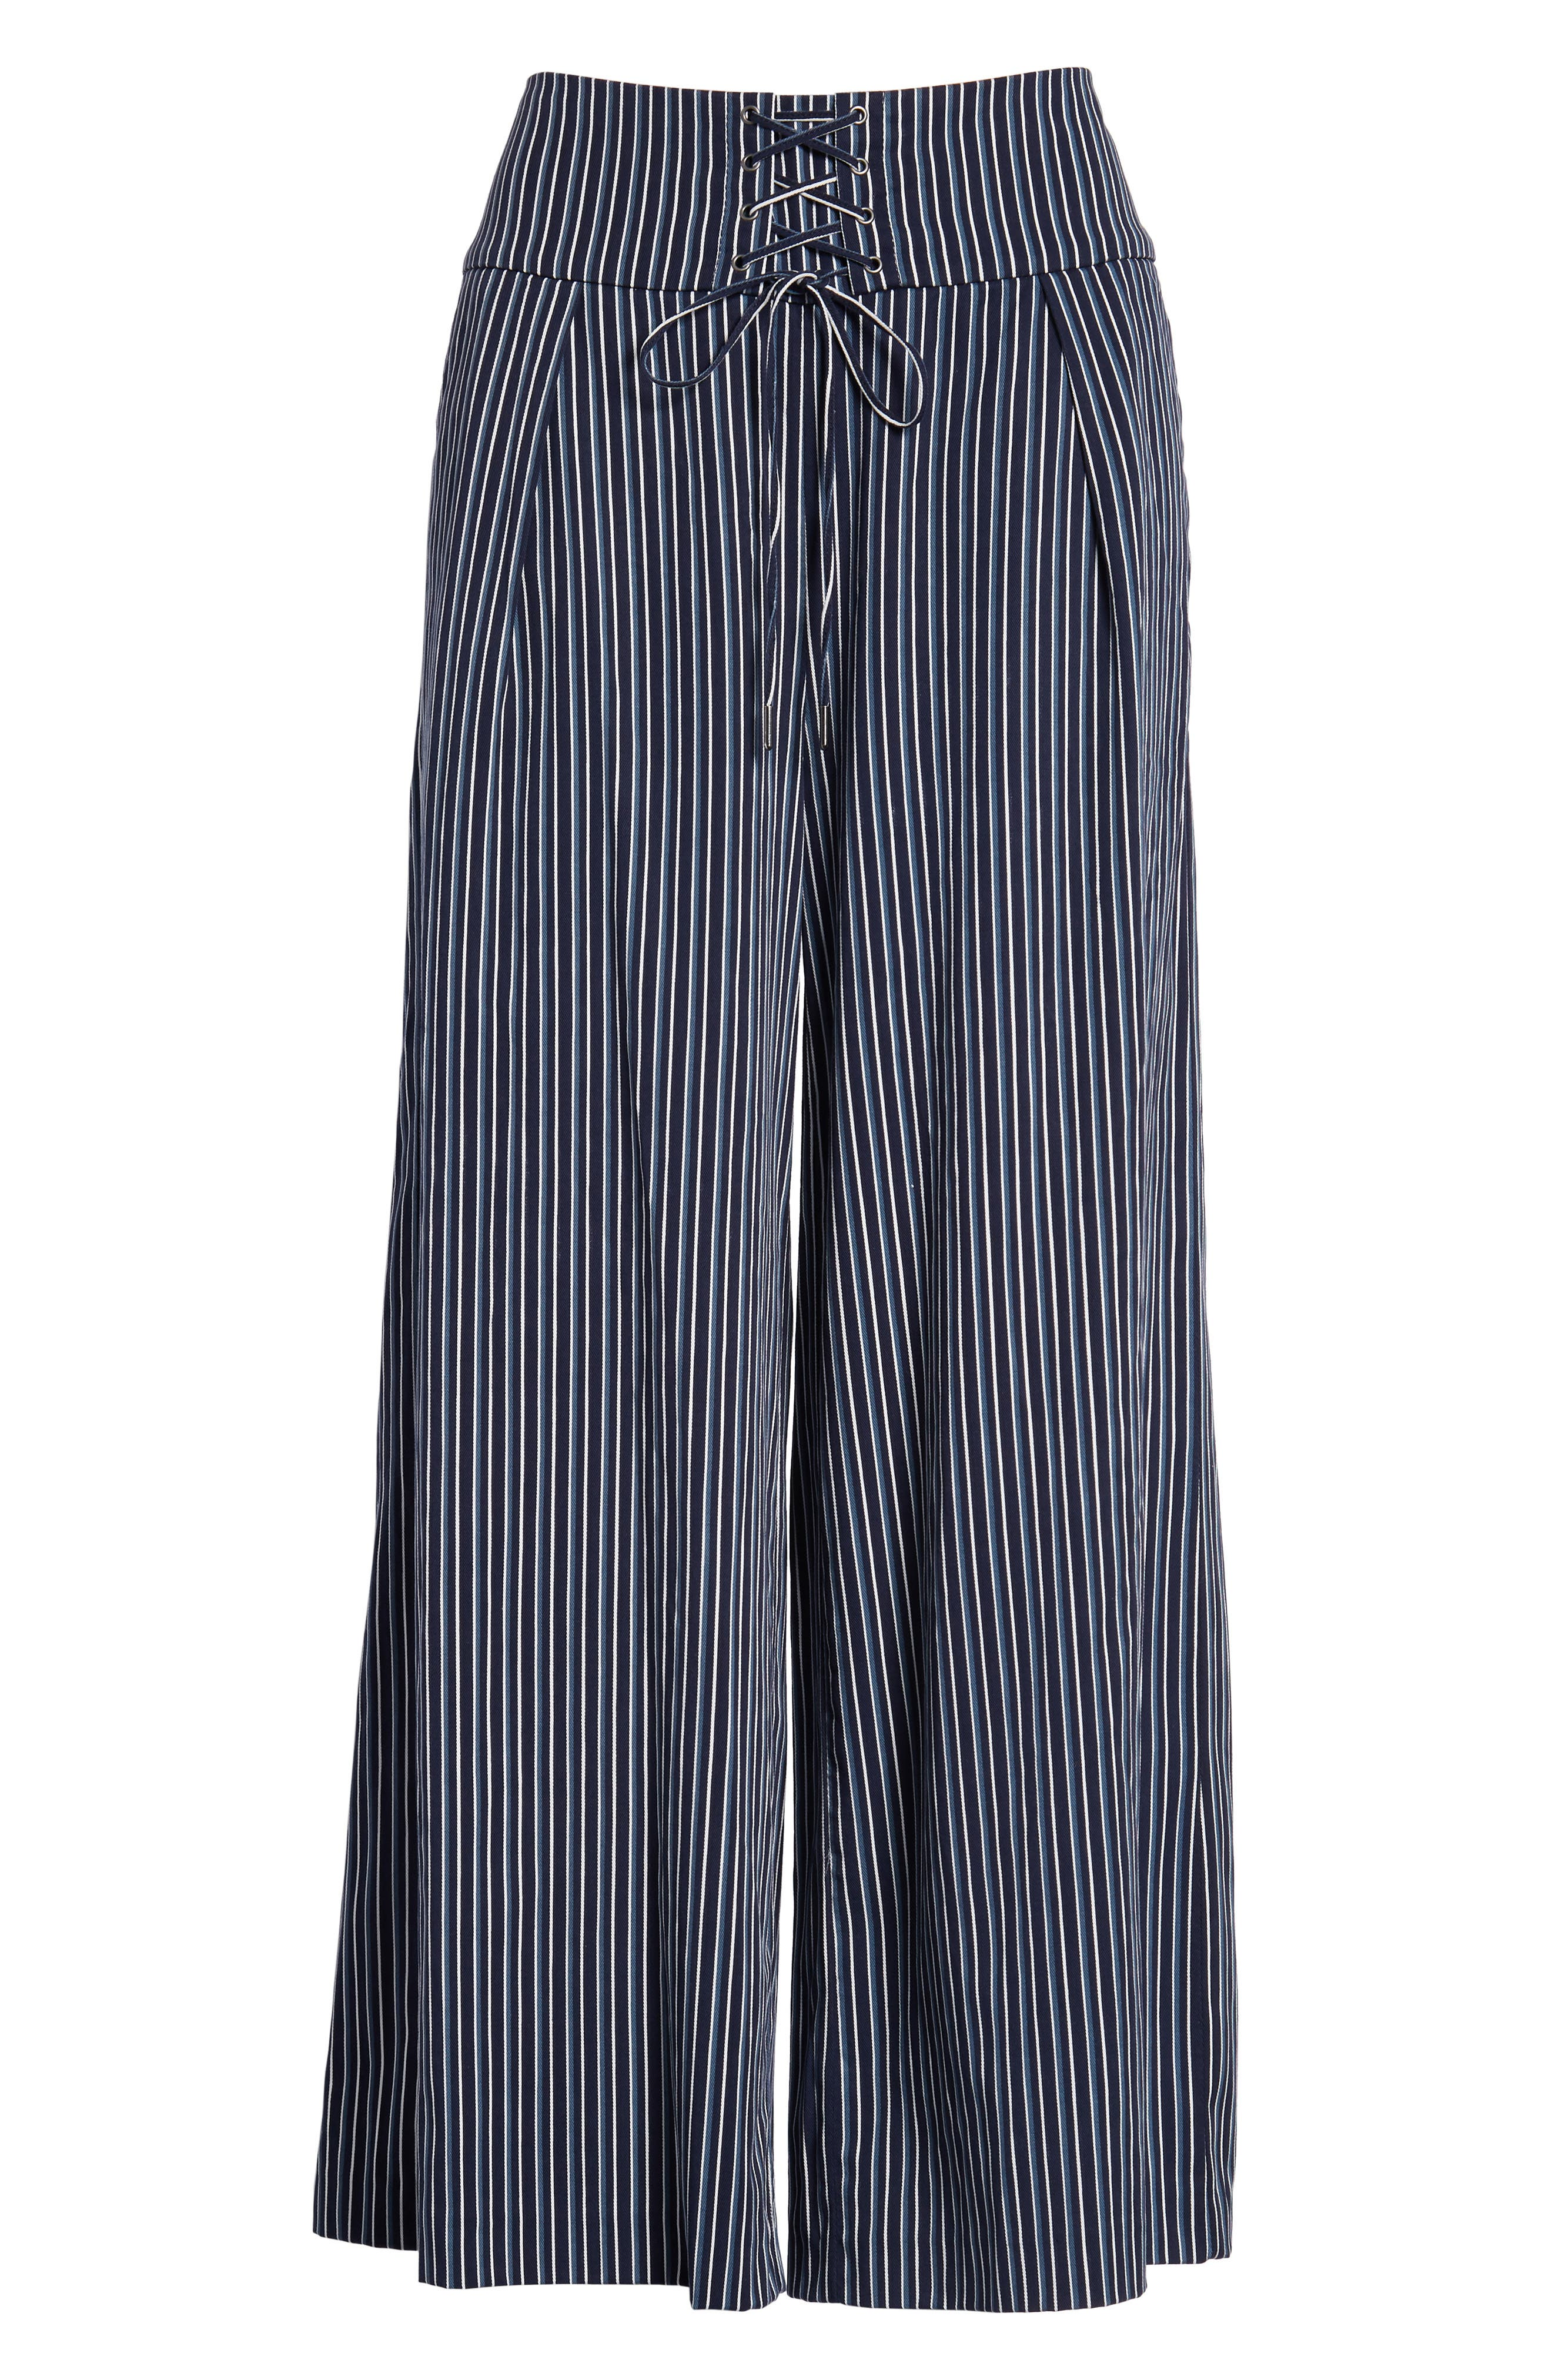 Charisma Pants,                             Alternate thumbnail 4, color,                             Rich Navy Multi